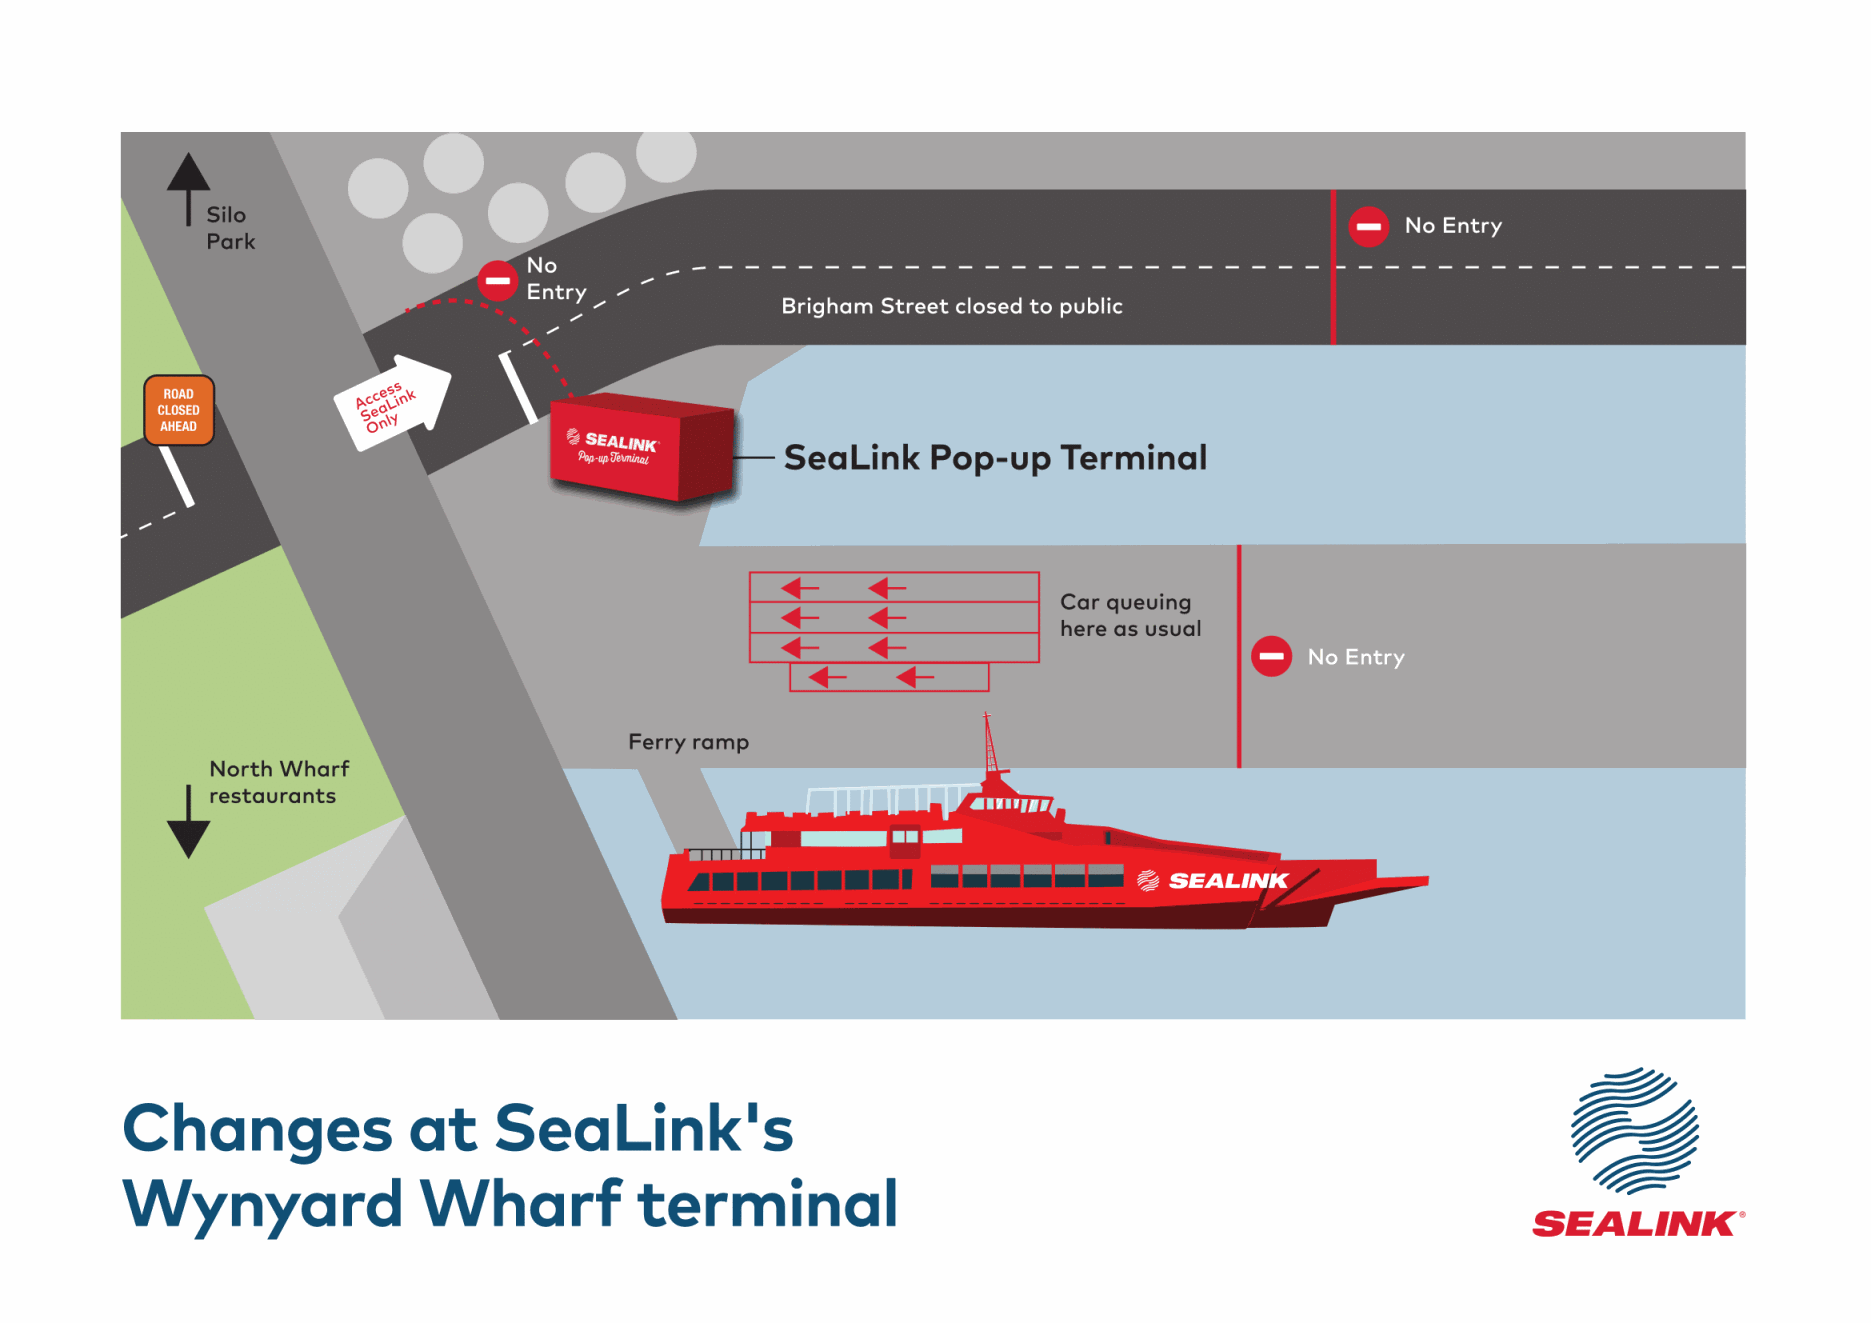 SeaLink Wynyard Wharf terminal road changes